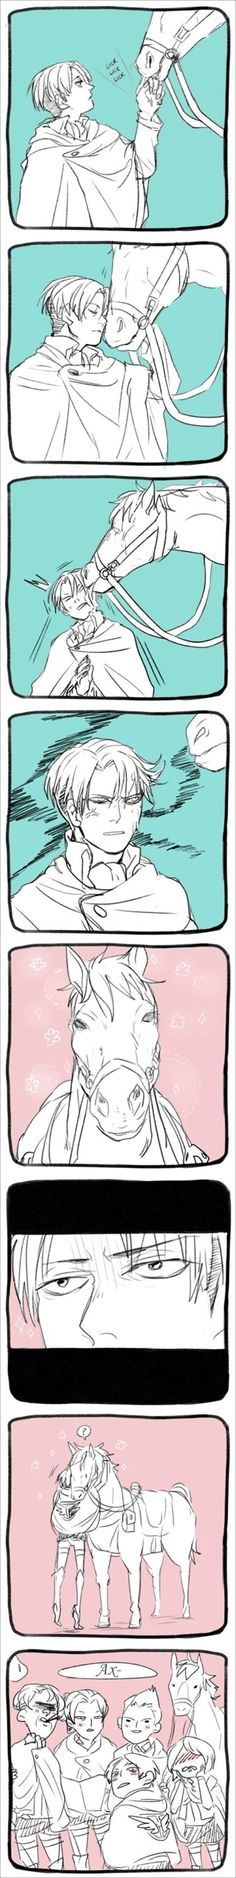 Eren: Oh god babe you love the horse more than me? Levi: No. *grabs Eren, gets on horse, rides of into the sunset with his bae* Petra: WHAT THE FUCK?!